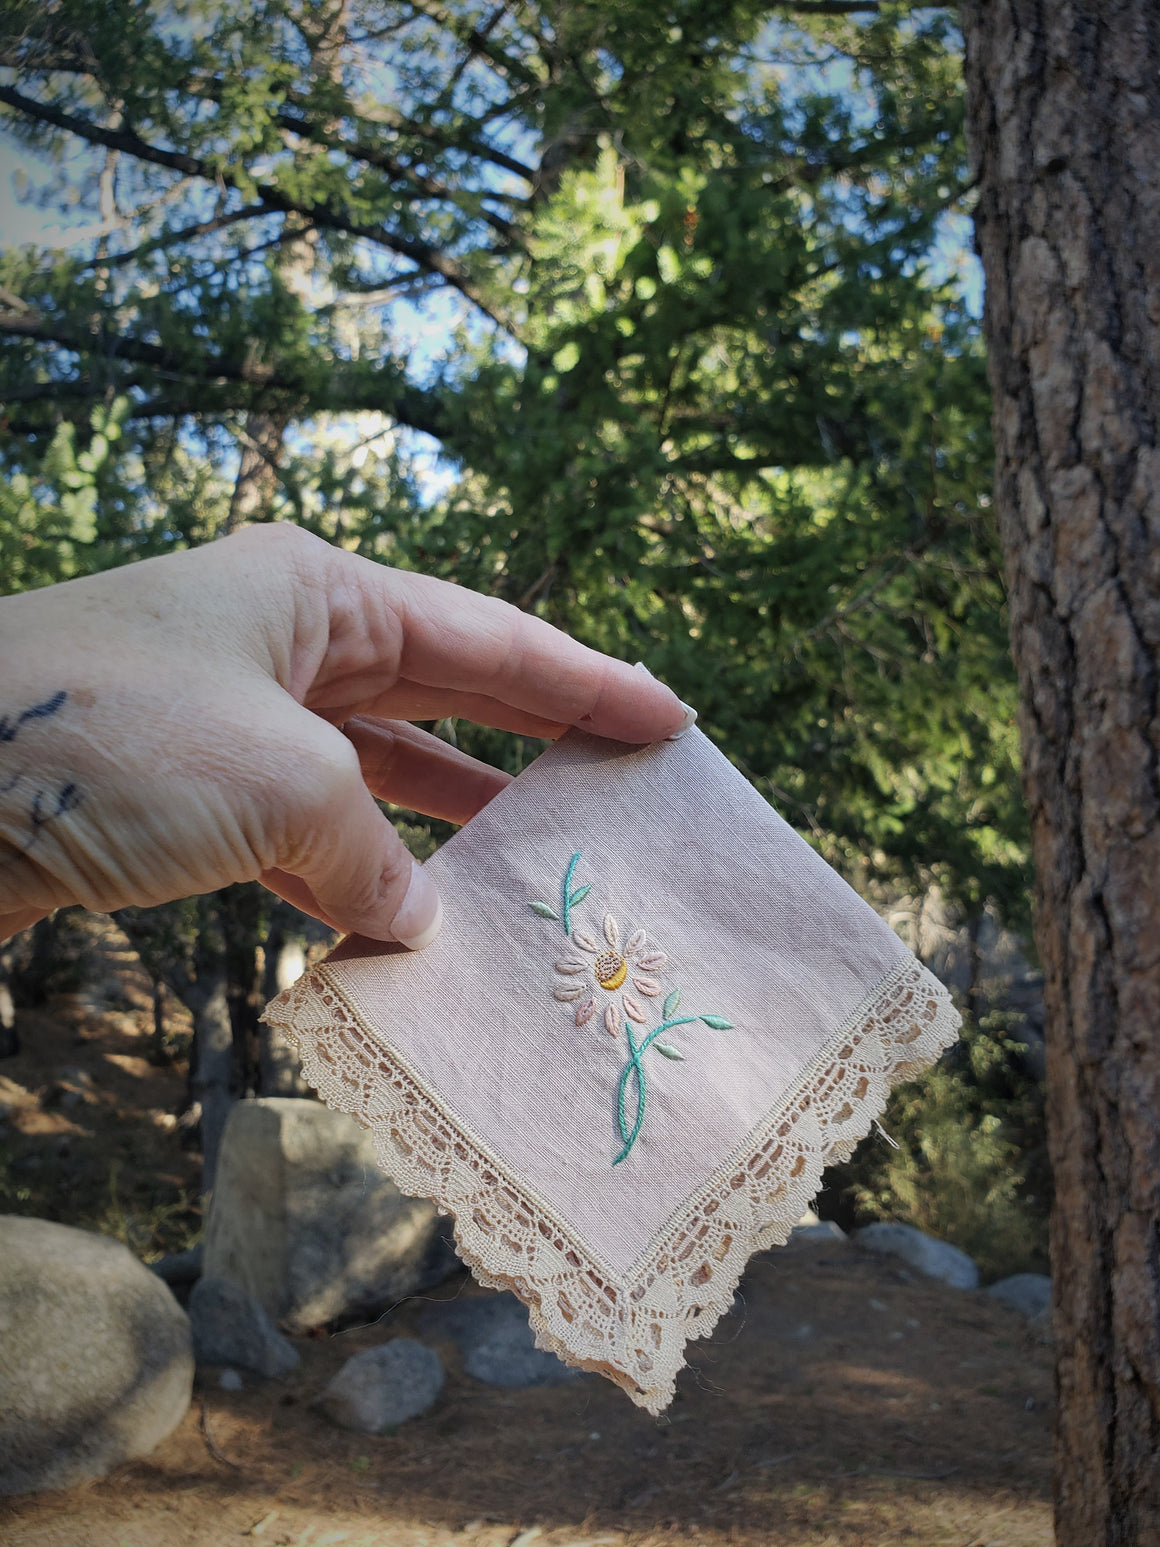 Hand Plant Dyed Vintage Handkerchief with Embroidered Wildflower